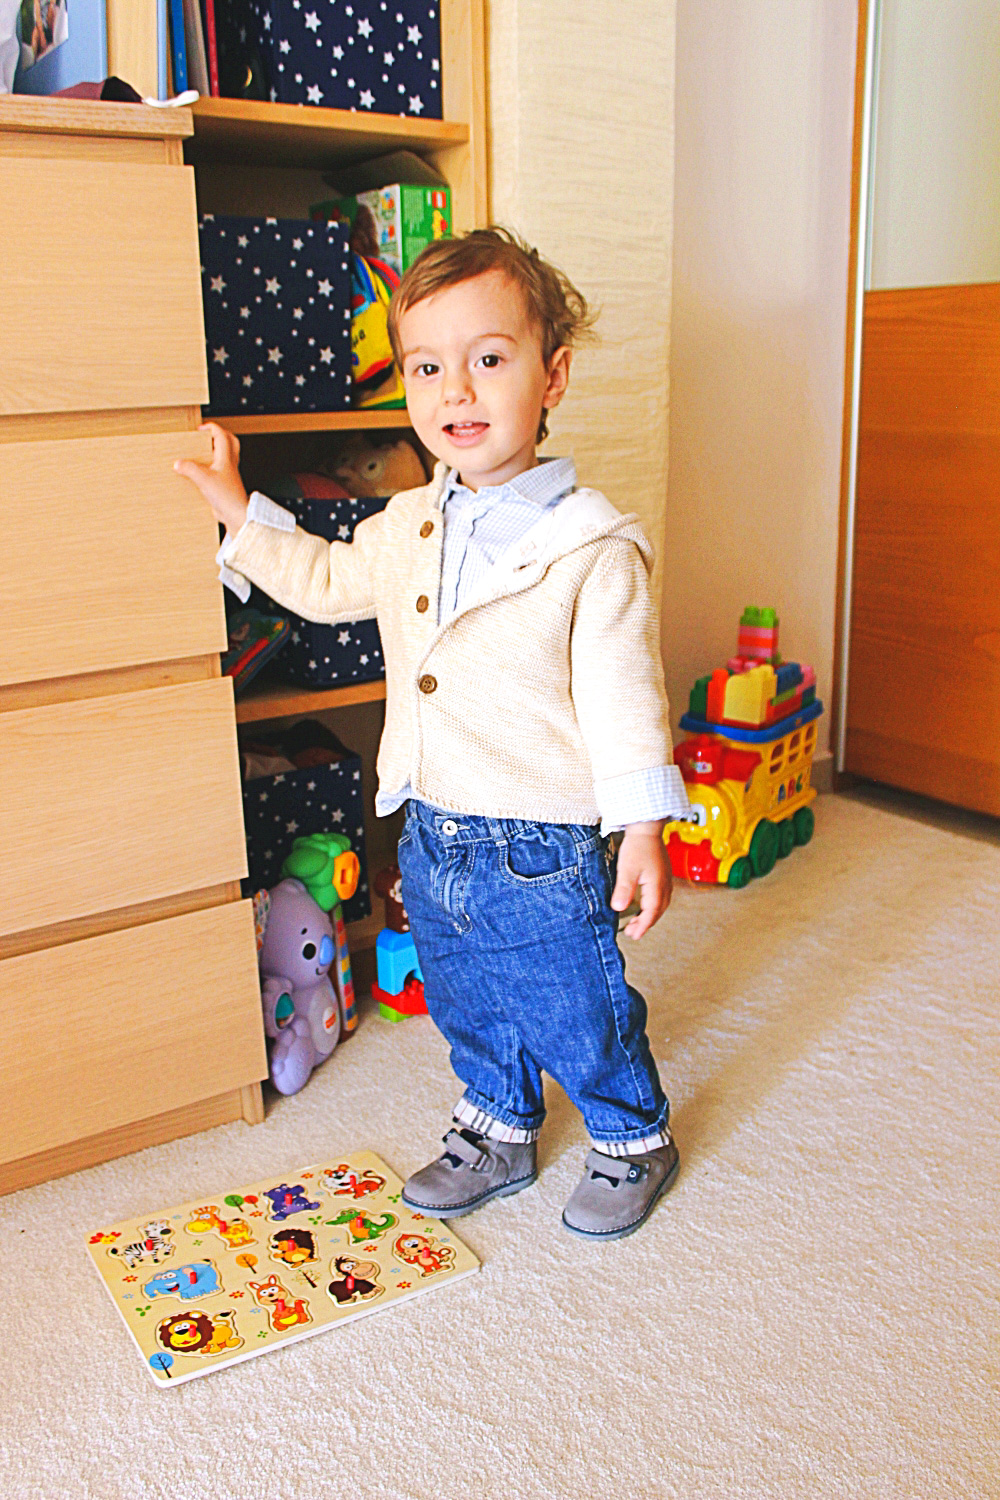 Burberry kids clothes jeans for boys, cute baby boy outfit ideas, toddler boy cute fashion style, stil za decake